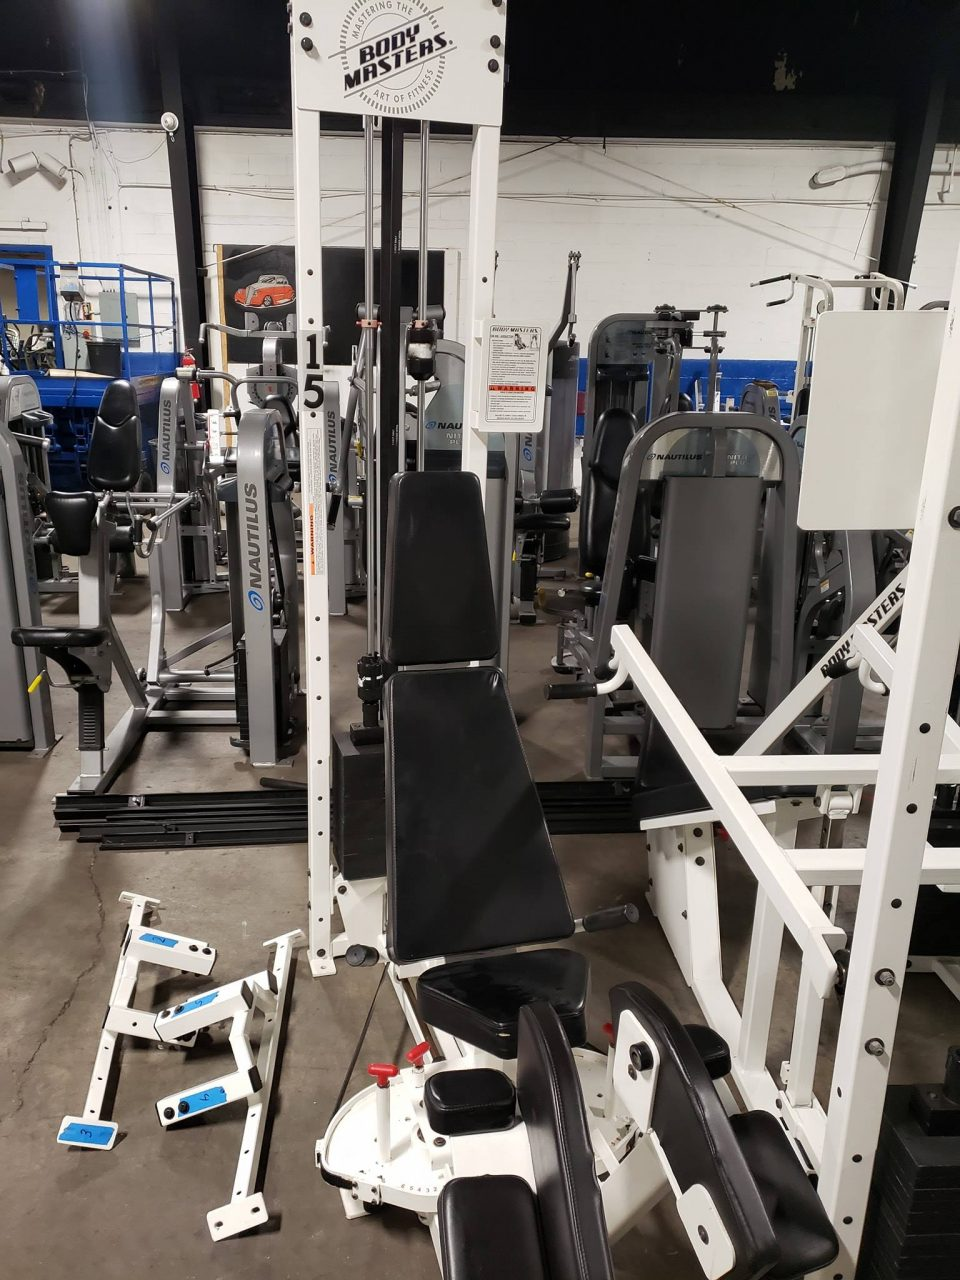 37 Piece Body Master Complete Gym Package Great Deal